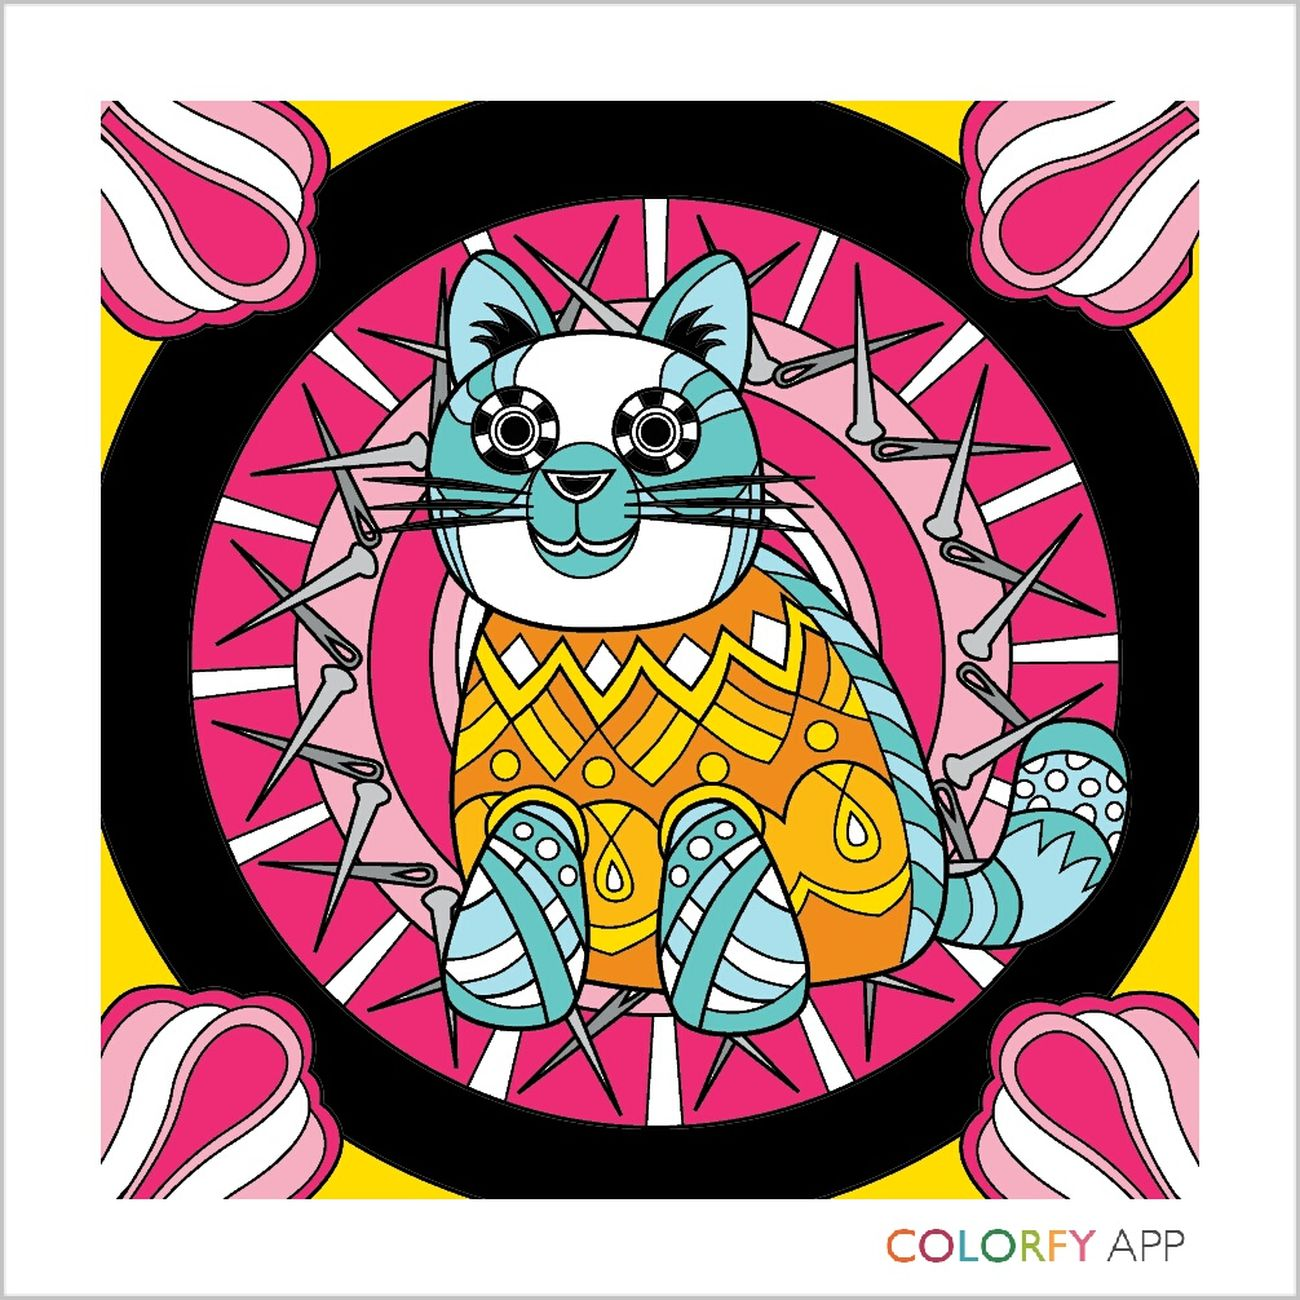 Ilovecat Colorfyapp❤ Colorfy